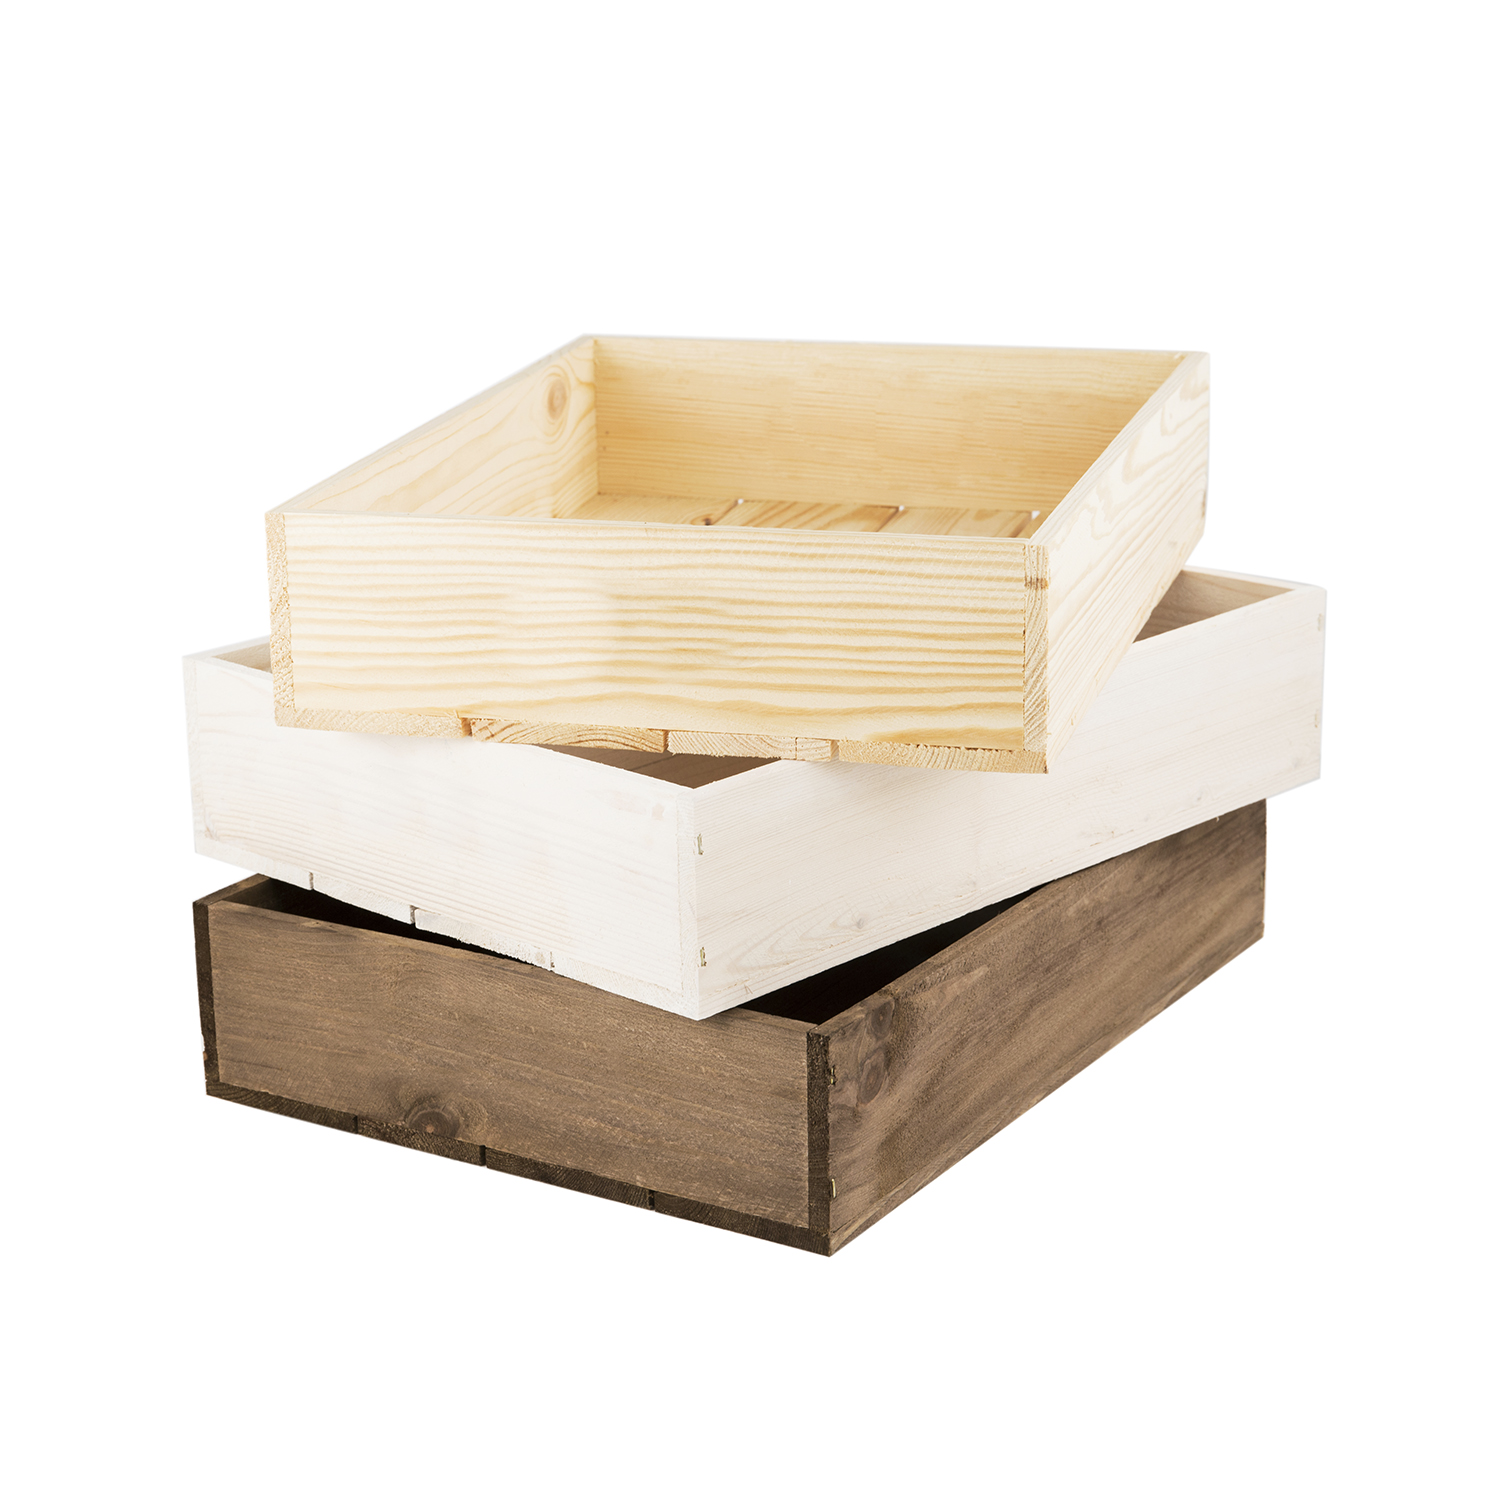 Small rustic wooden seeder tray woodenboxuk for Empty wine crates